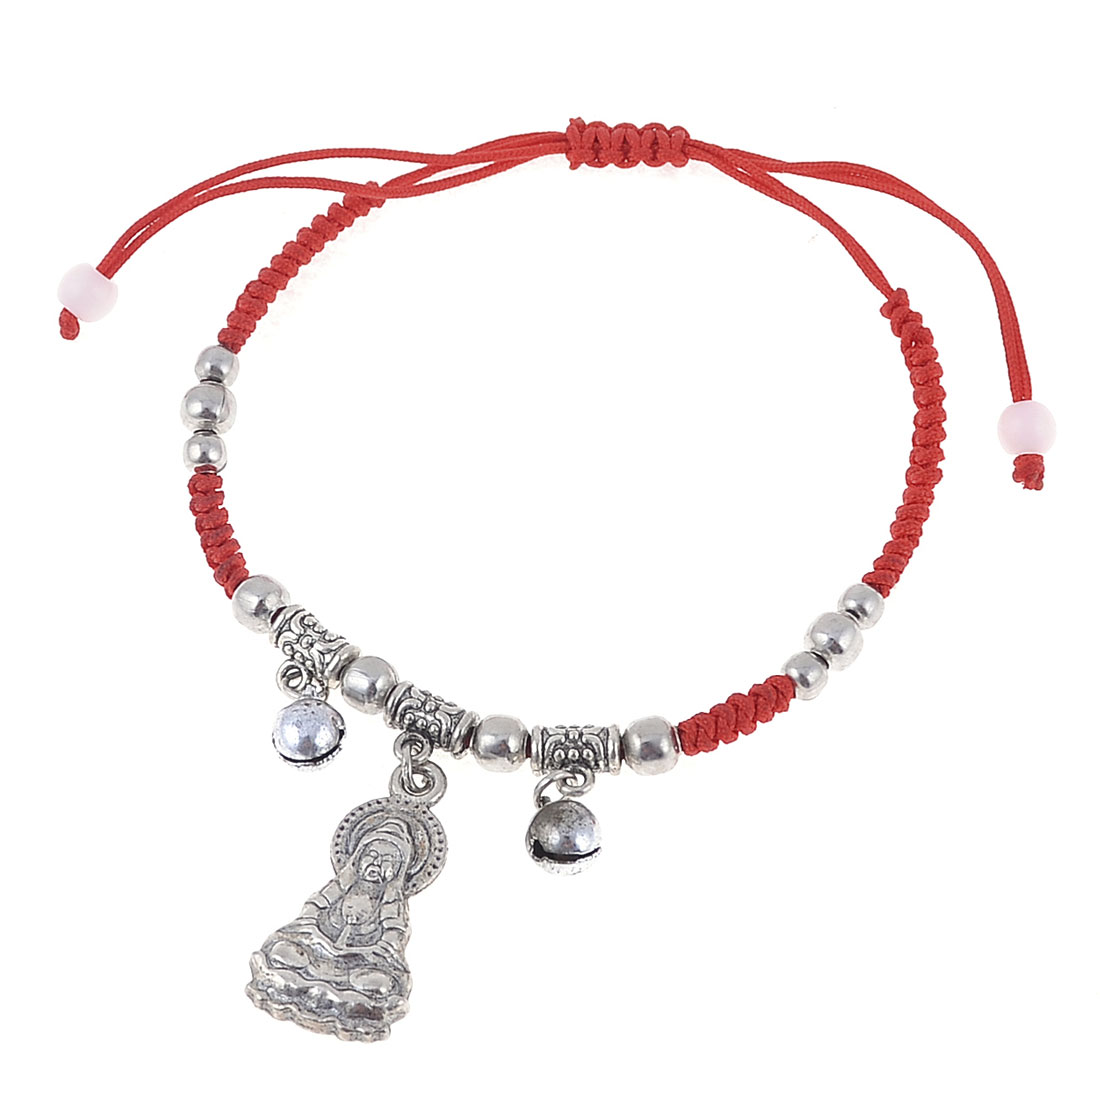 Lady Red Handmade Braided Rope Kwan-yin Shape Pull String Wrist Bracelet